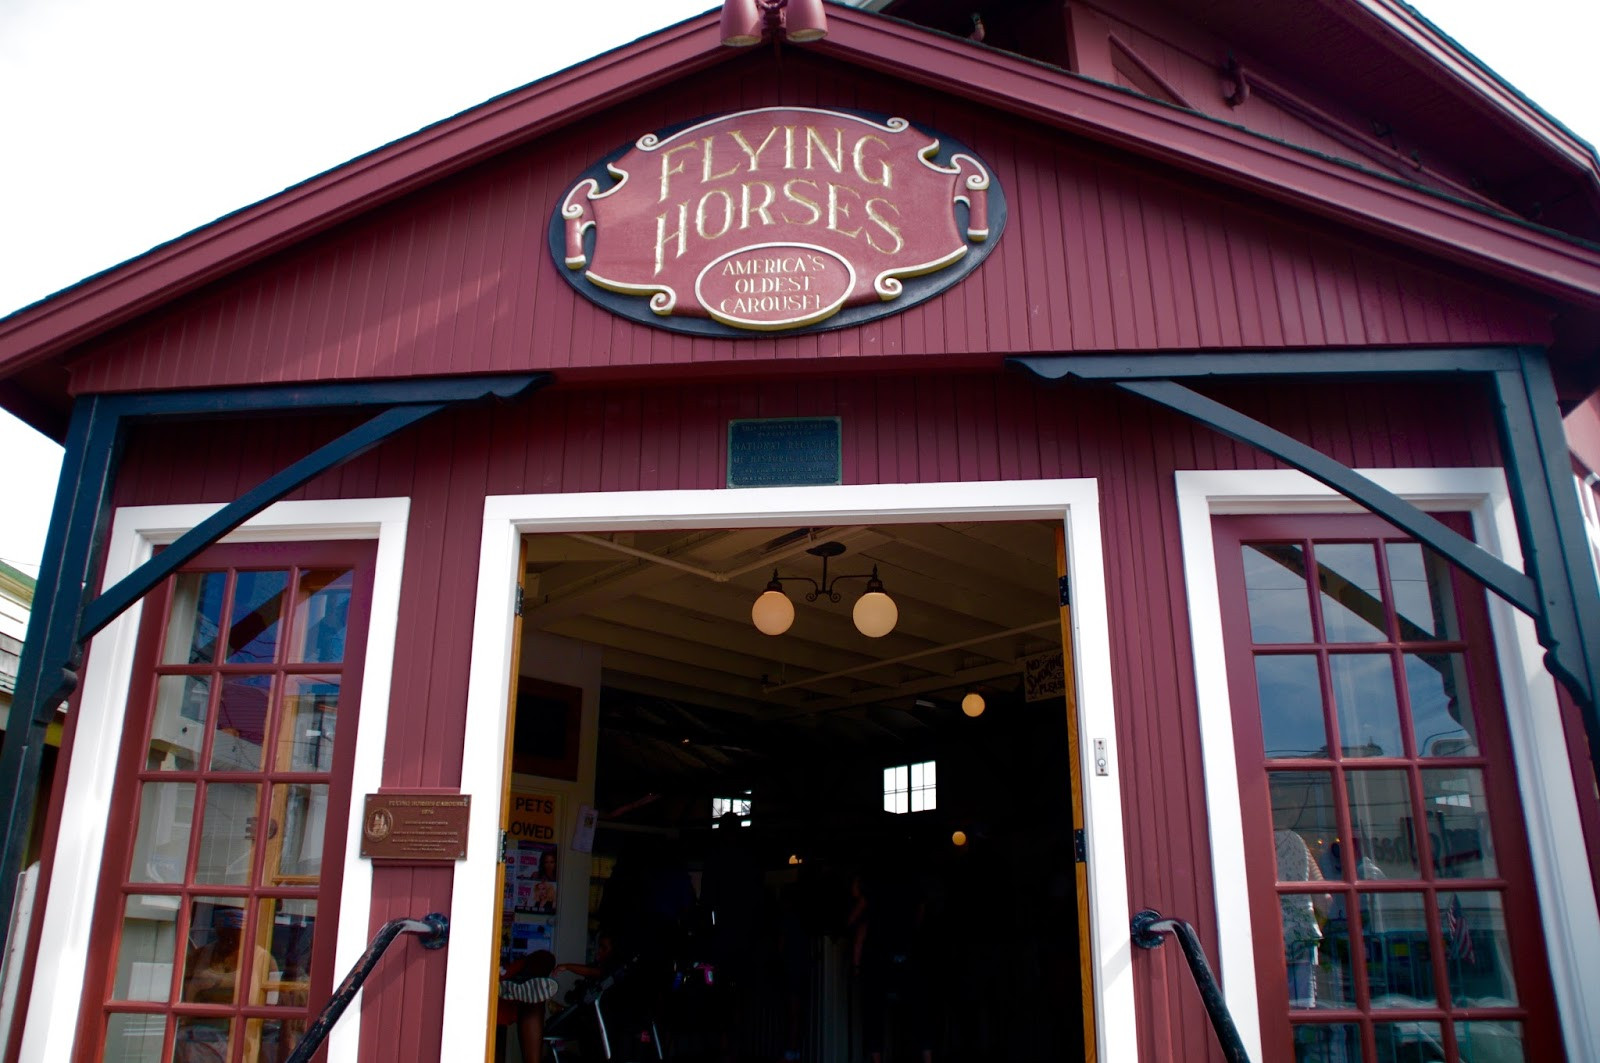 America's Oldest Carousel Martha's Vineyard